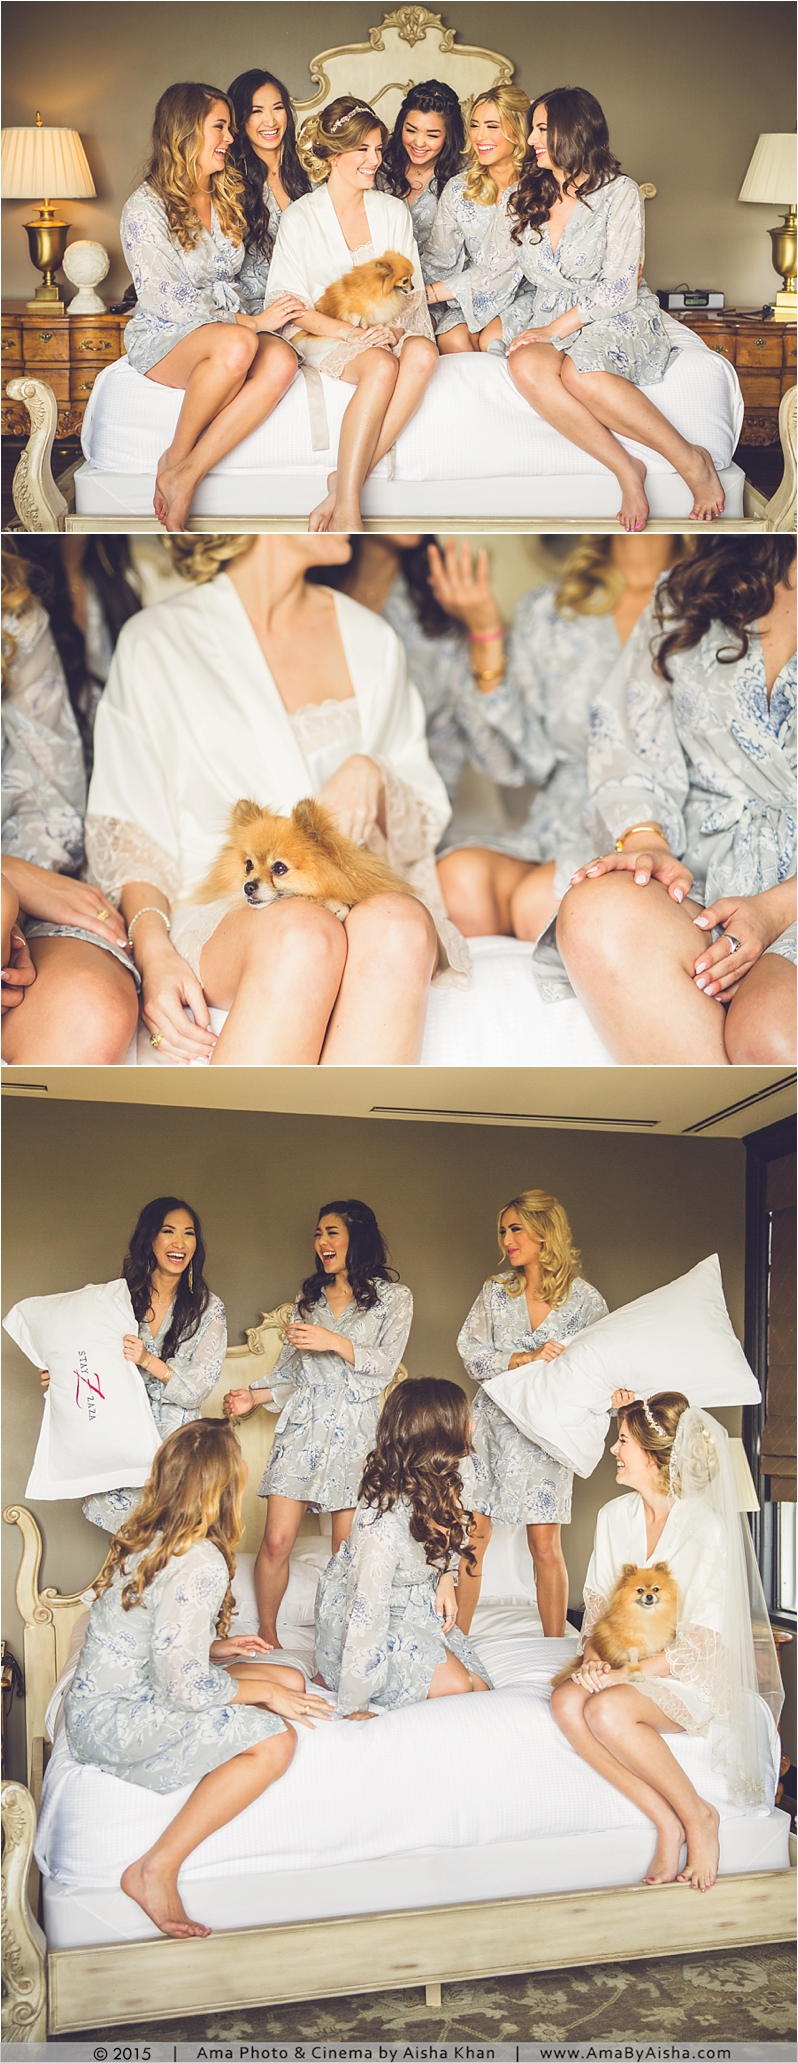 love this bride with bridesmaids and puppy! And a pillow fight!? lol